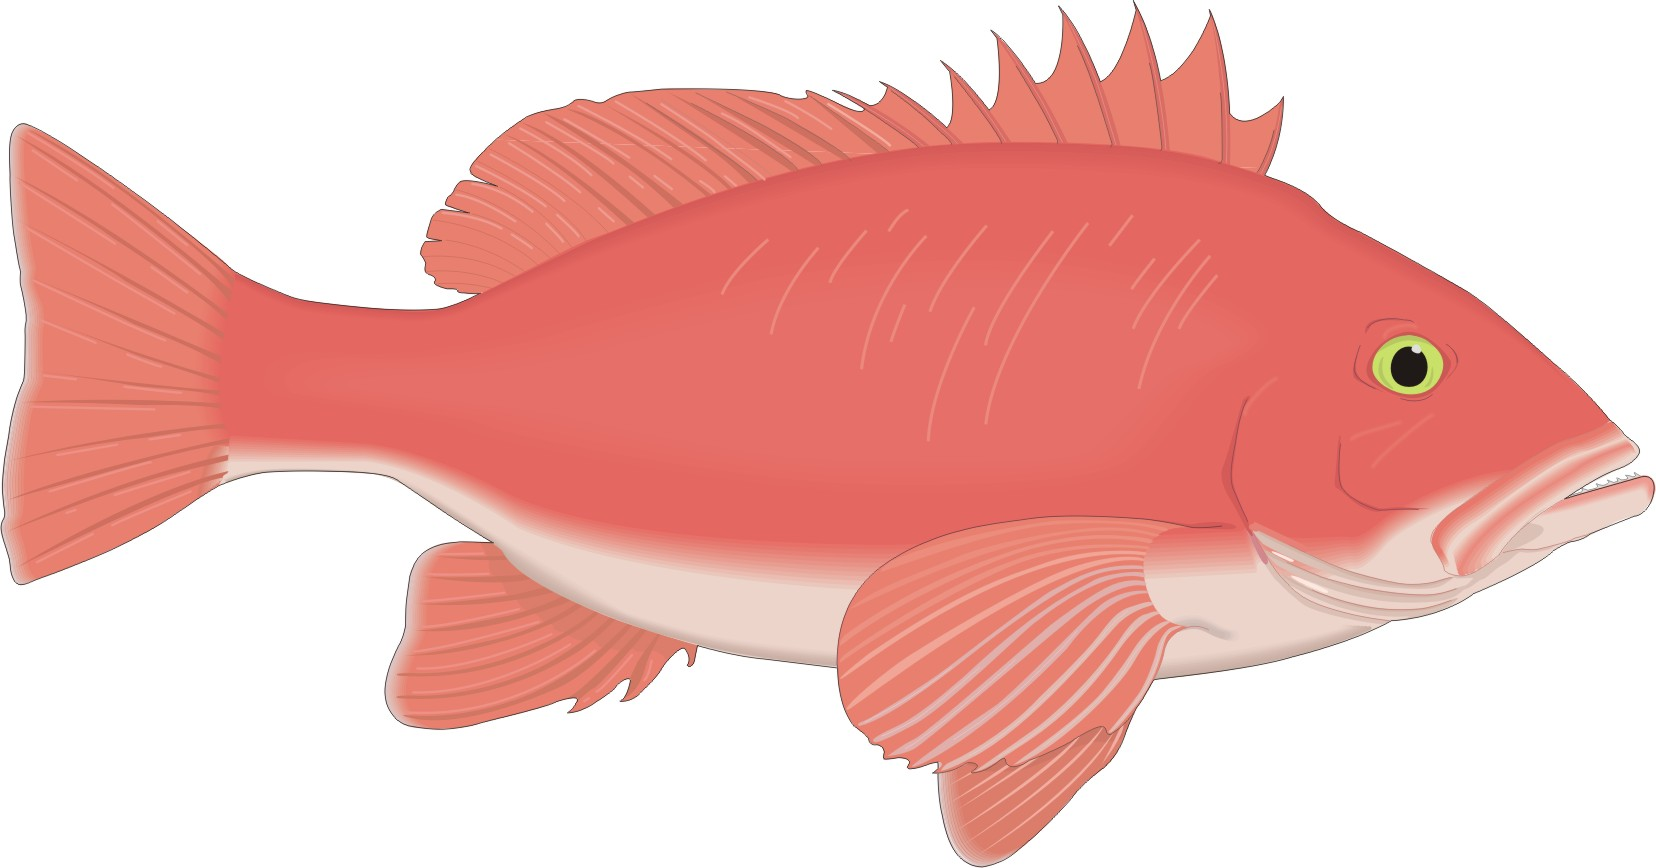 Red Fish Cartoon Clipart Best